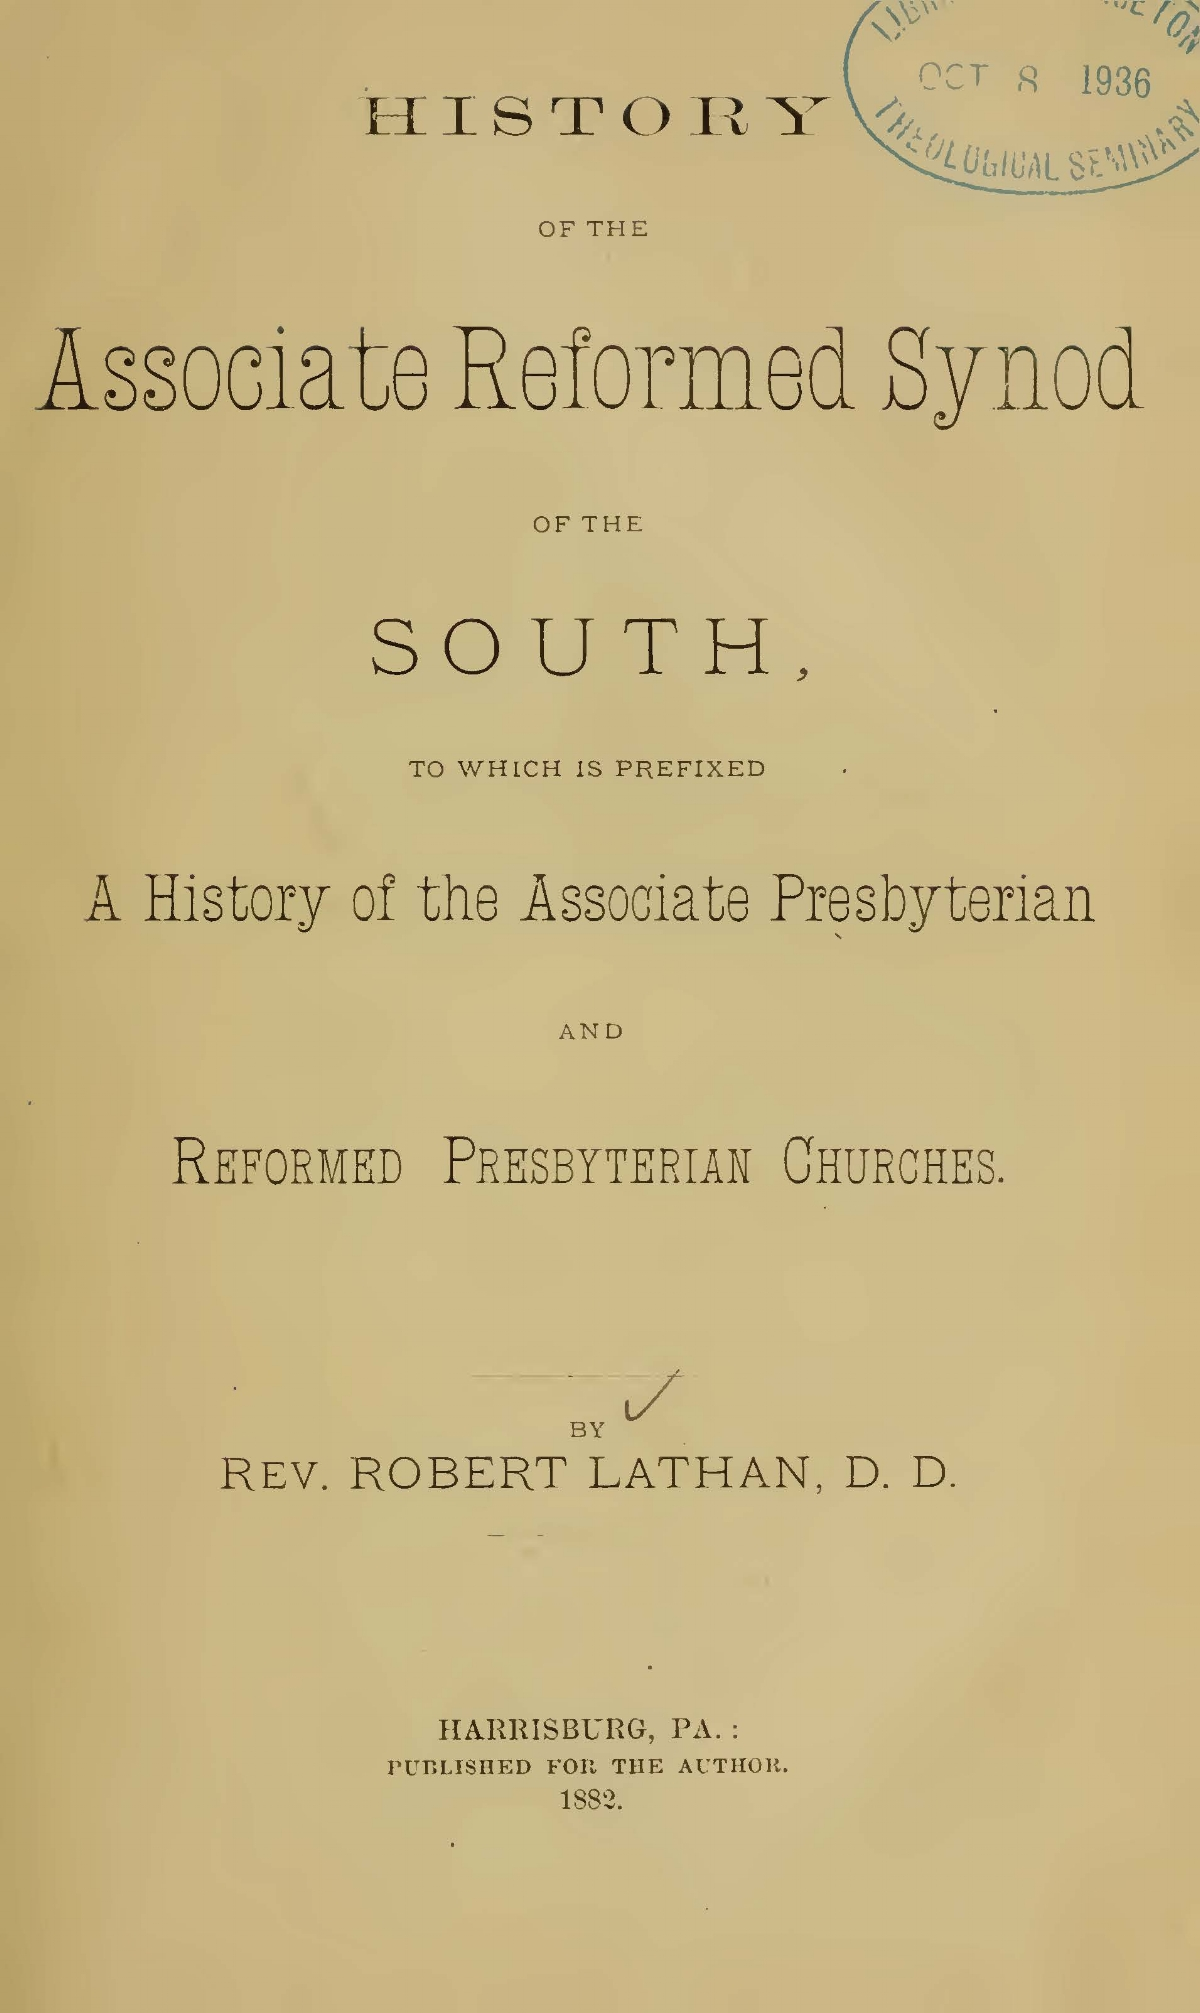 Lathan, Robert R., History of the Associate Reformed Synod of the South Title Page.jpg